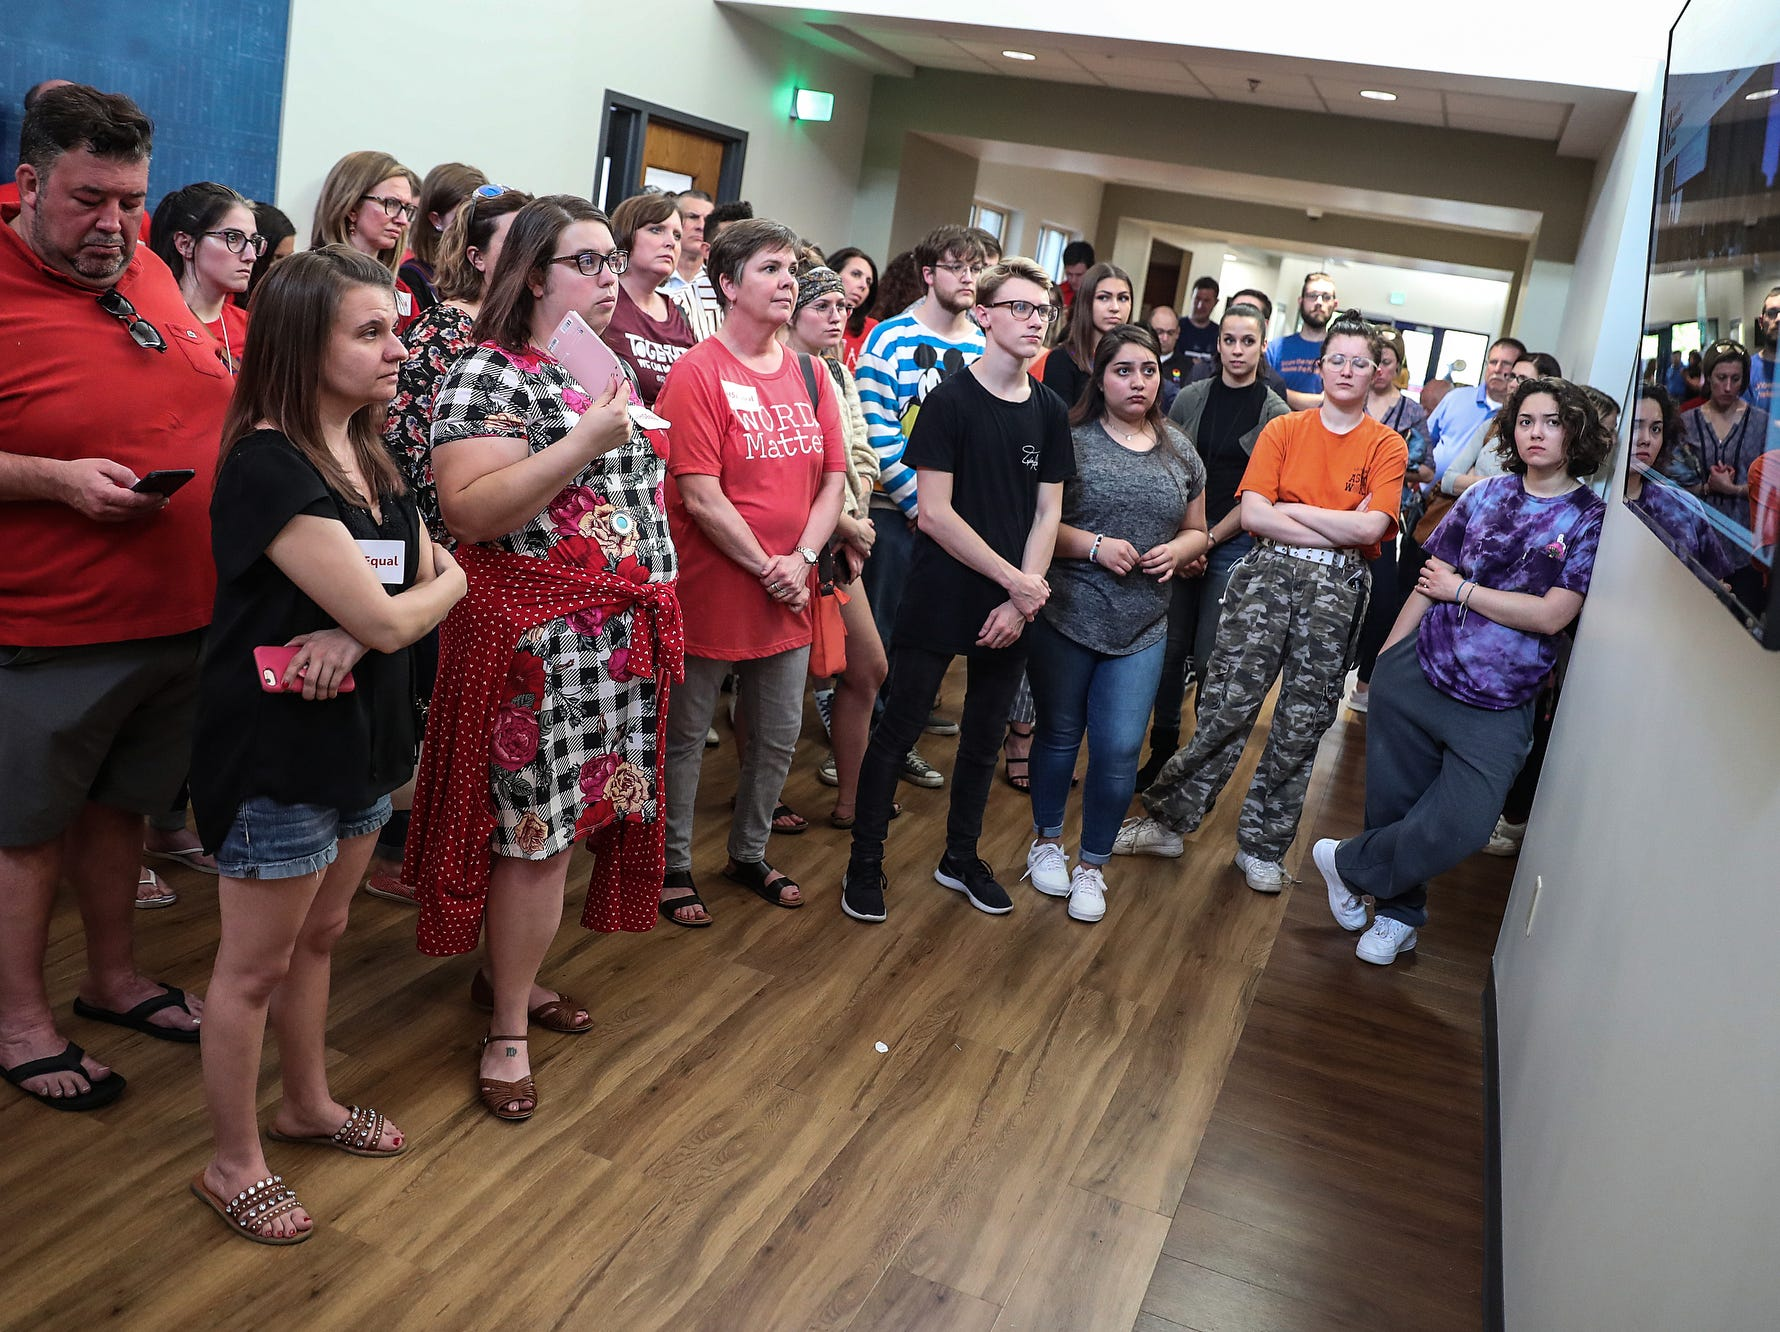 People watch a screen in the hallway outside the Hamilton Southeastern Schools board meeting at Cumberland Road Elementary in Fishers, Ind., Wednesday, May 8, 2019. The board voted 5-2 to adopt an anti-discrimination policy including language specifically prohibiting discrimination and harassment based on gender identity and sexual orientation.